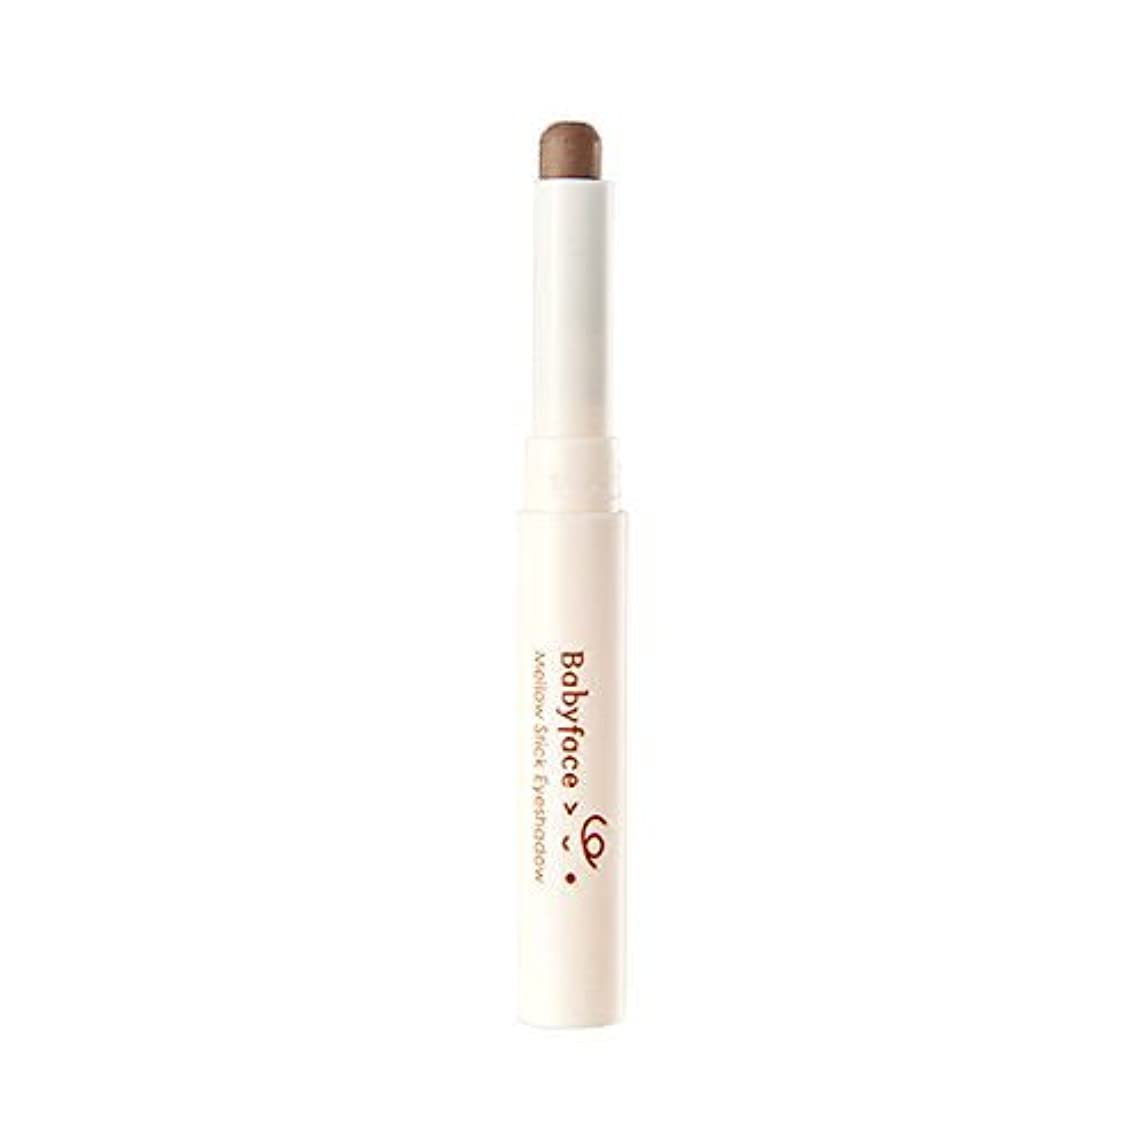 厚いランチョン映画ITS SKIN Babyface Mellow Stick Eyeshadow - #06 Hazelnut Syrup (並行輸入品)